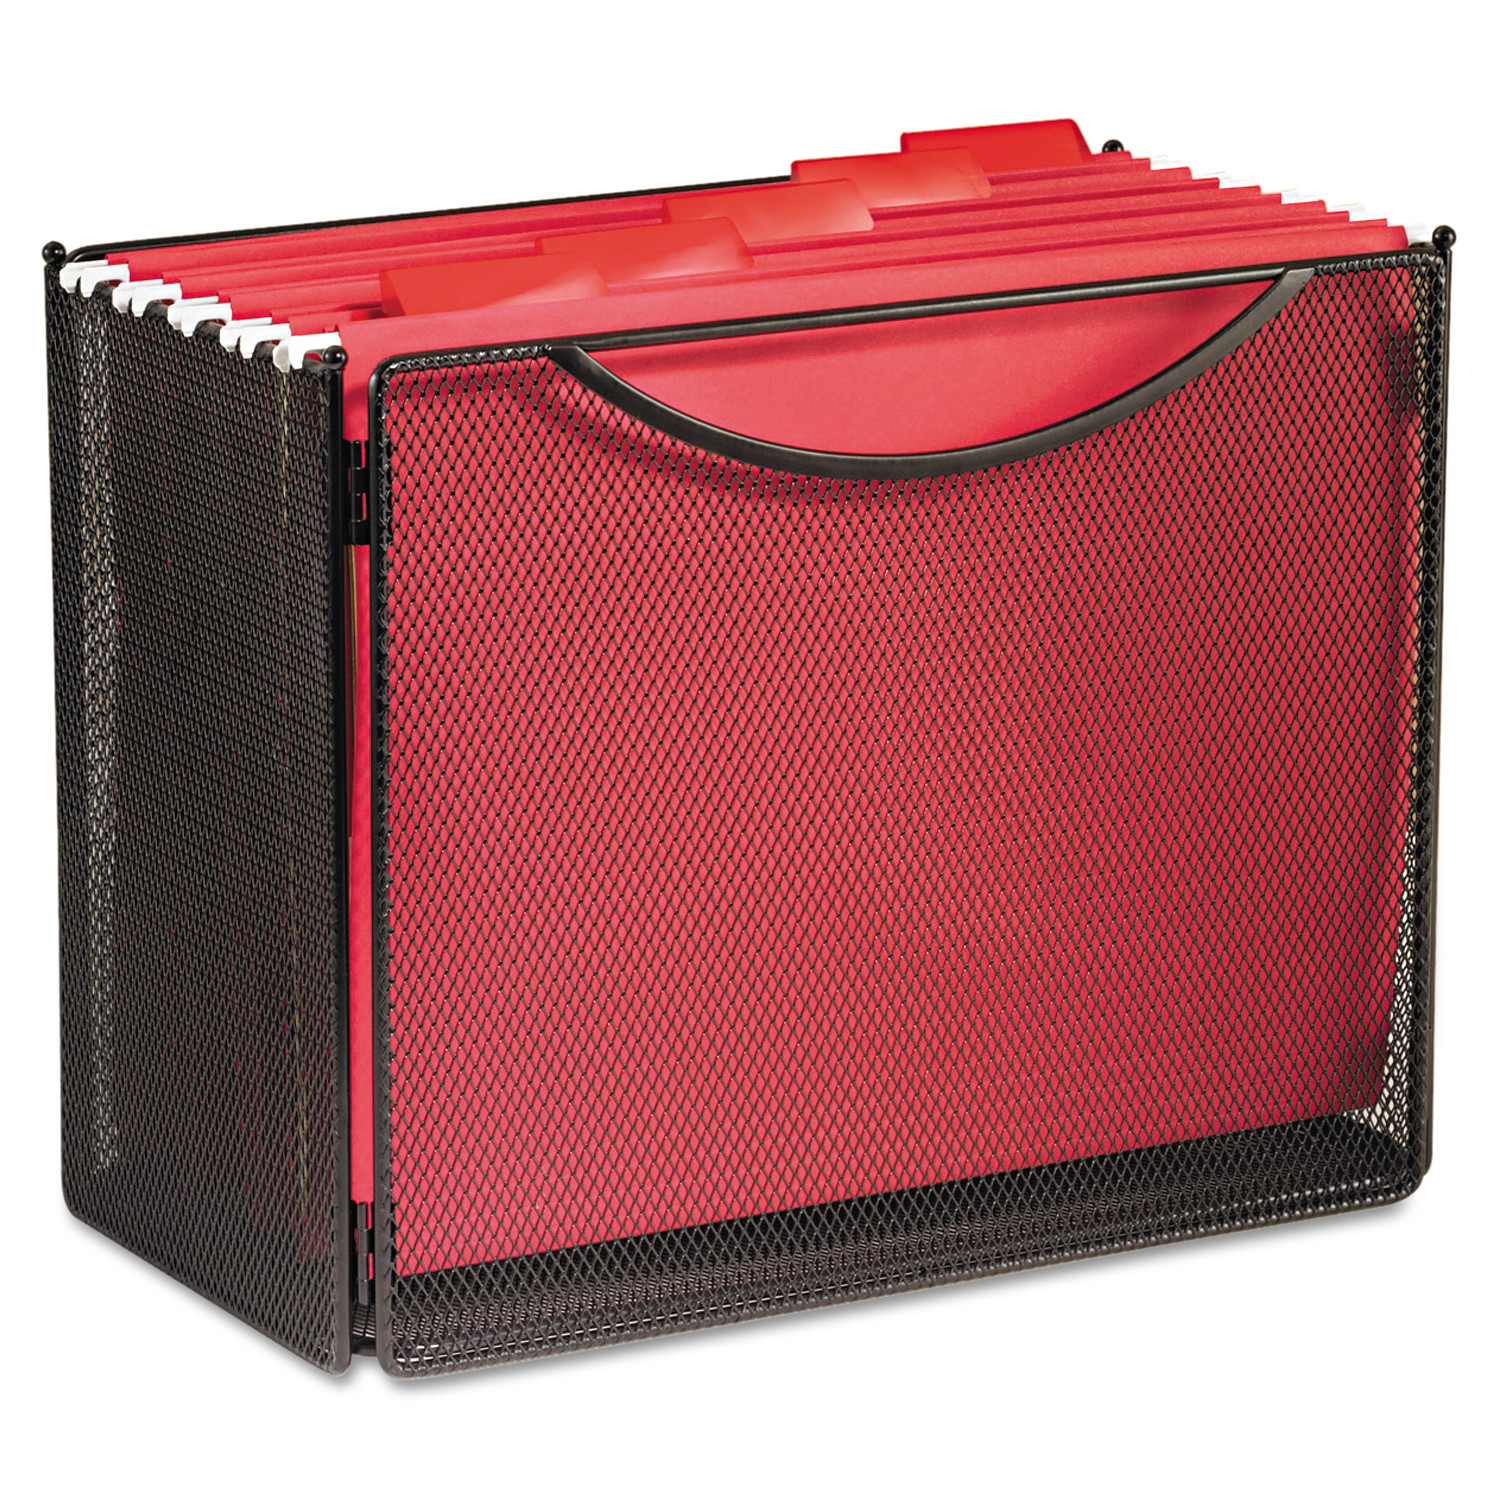 Safco Desktop File Storage Box, Steel Mesh, 12-1/2w x 7d x 10h -SAF2169BL